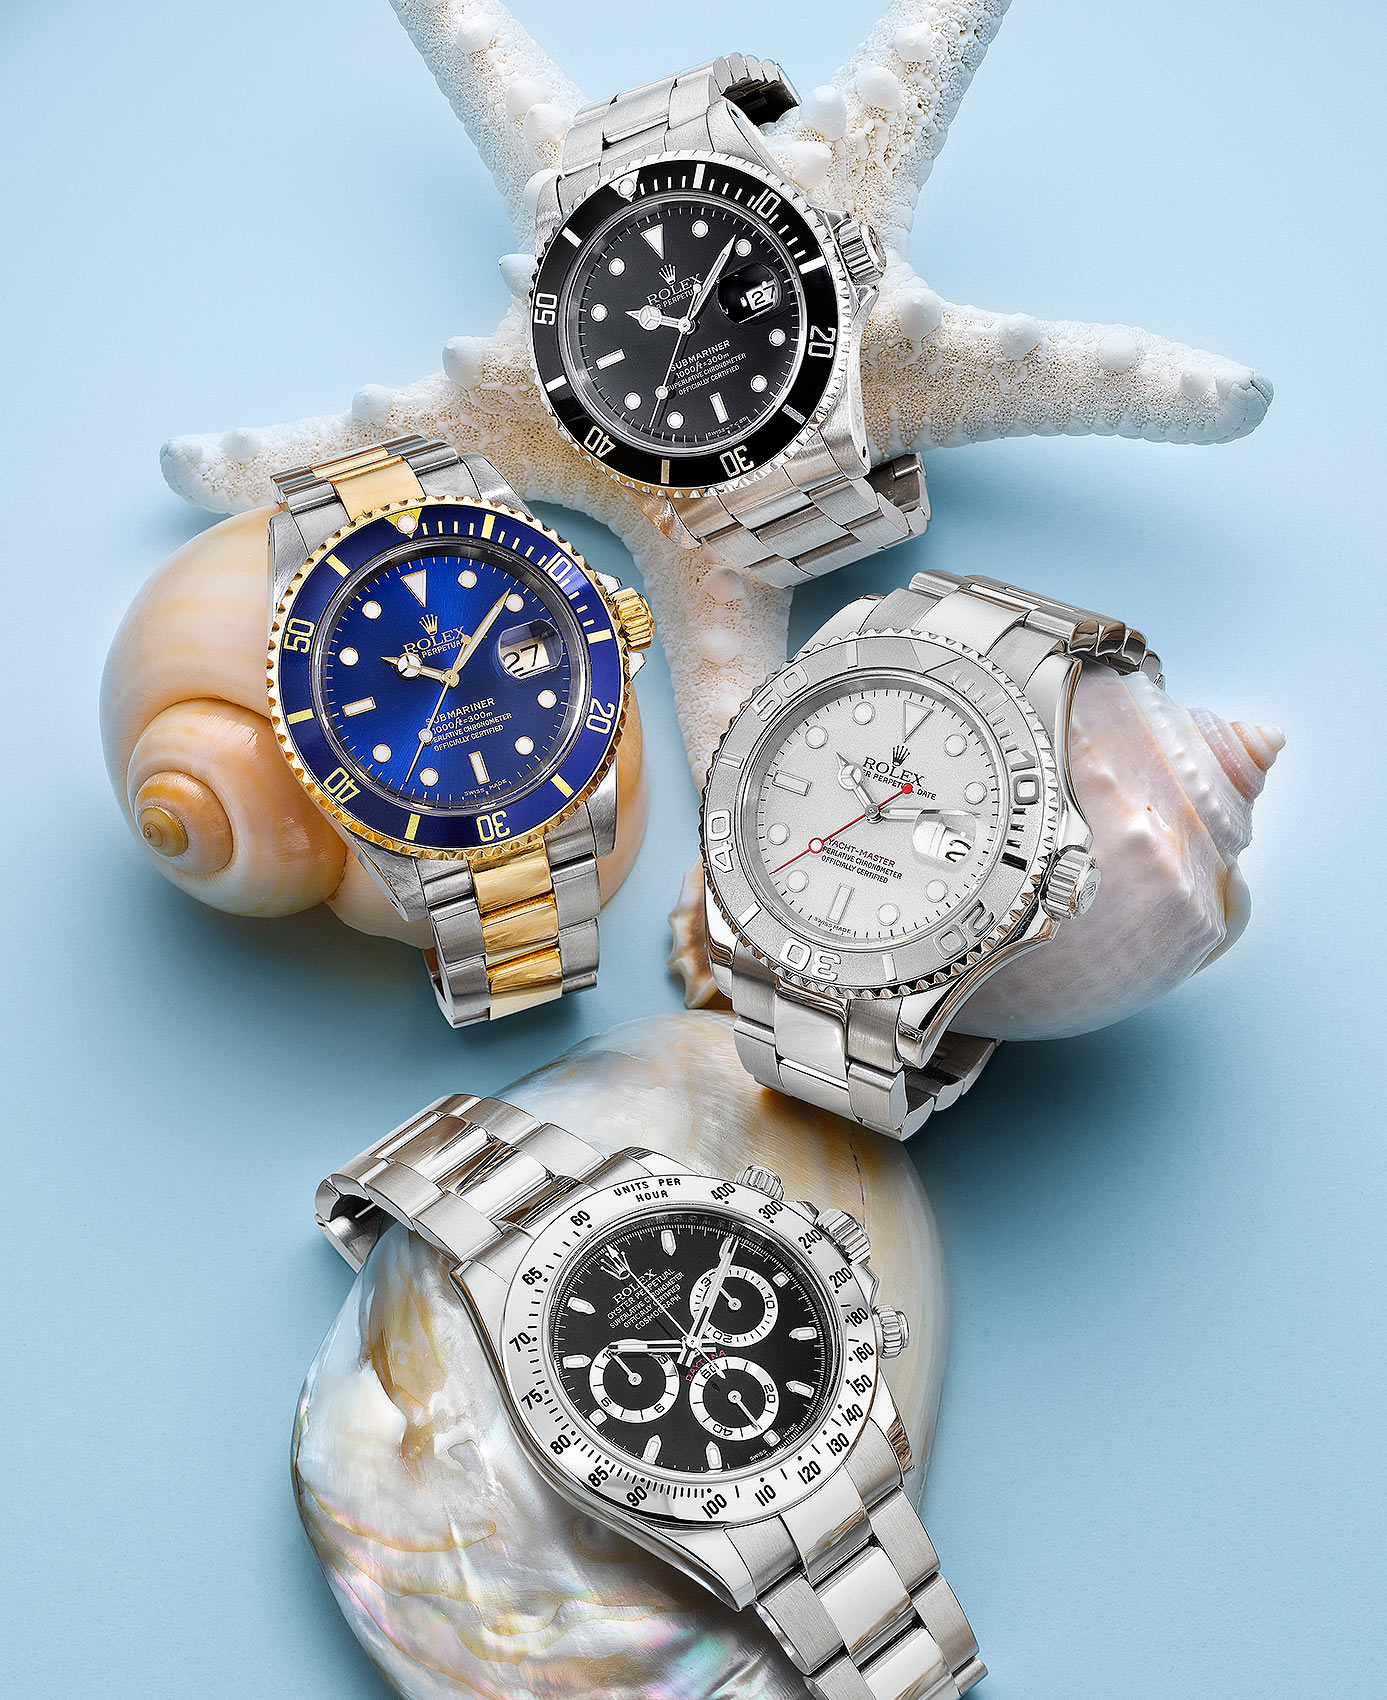 Rolex Timepieces with Shells